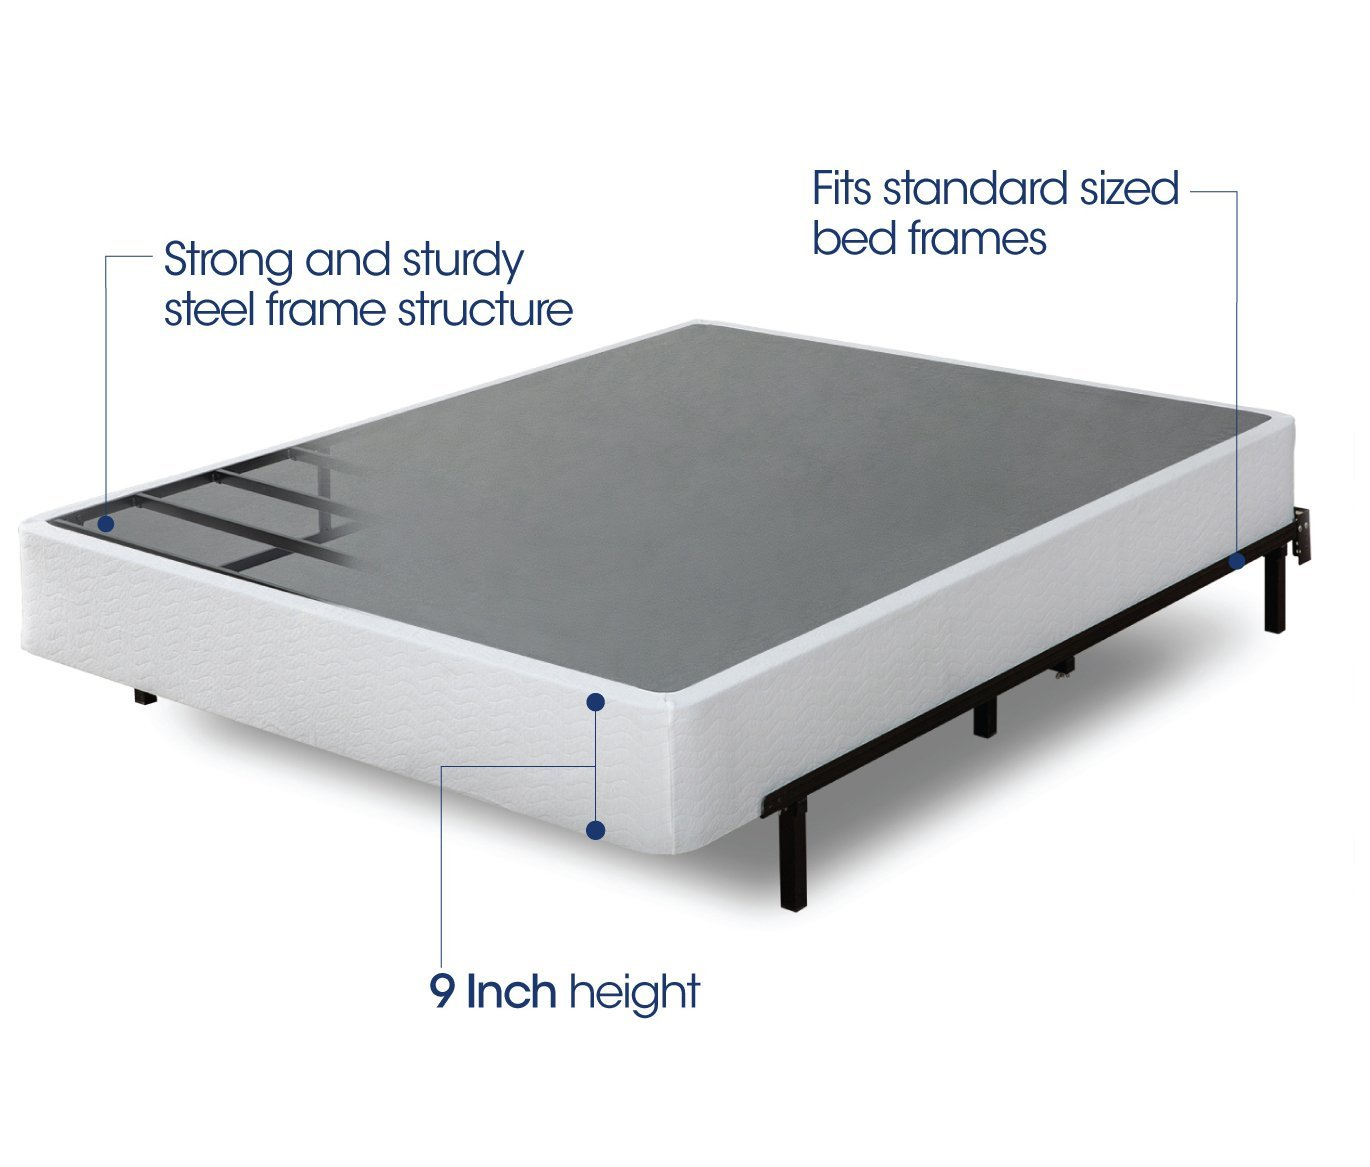 Zinus 9 Inch High Profile Smart Box Spring / Mattress Foundation / Strong Steel structure / Easy assembly required, King